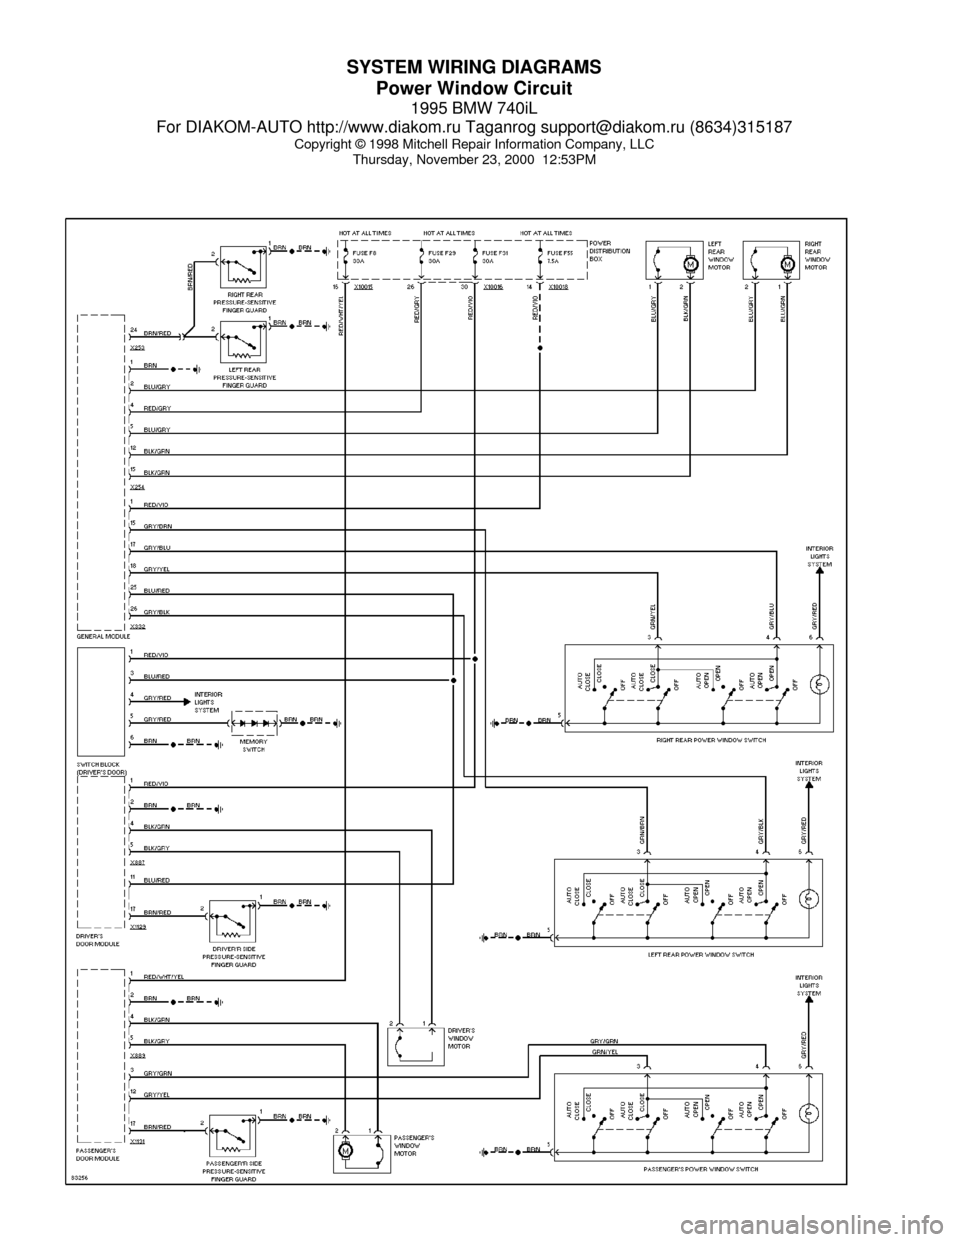 Bmw 740il 1995 E38 System Wiring Diagrams  60 Pages